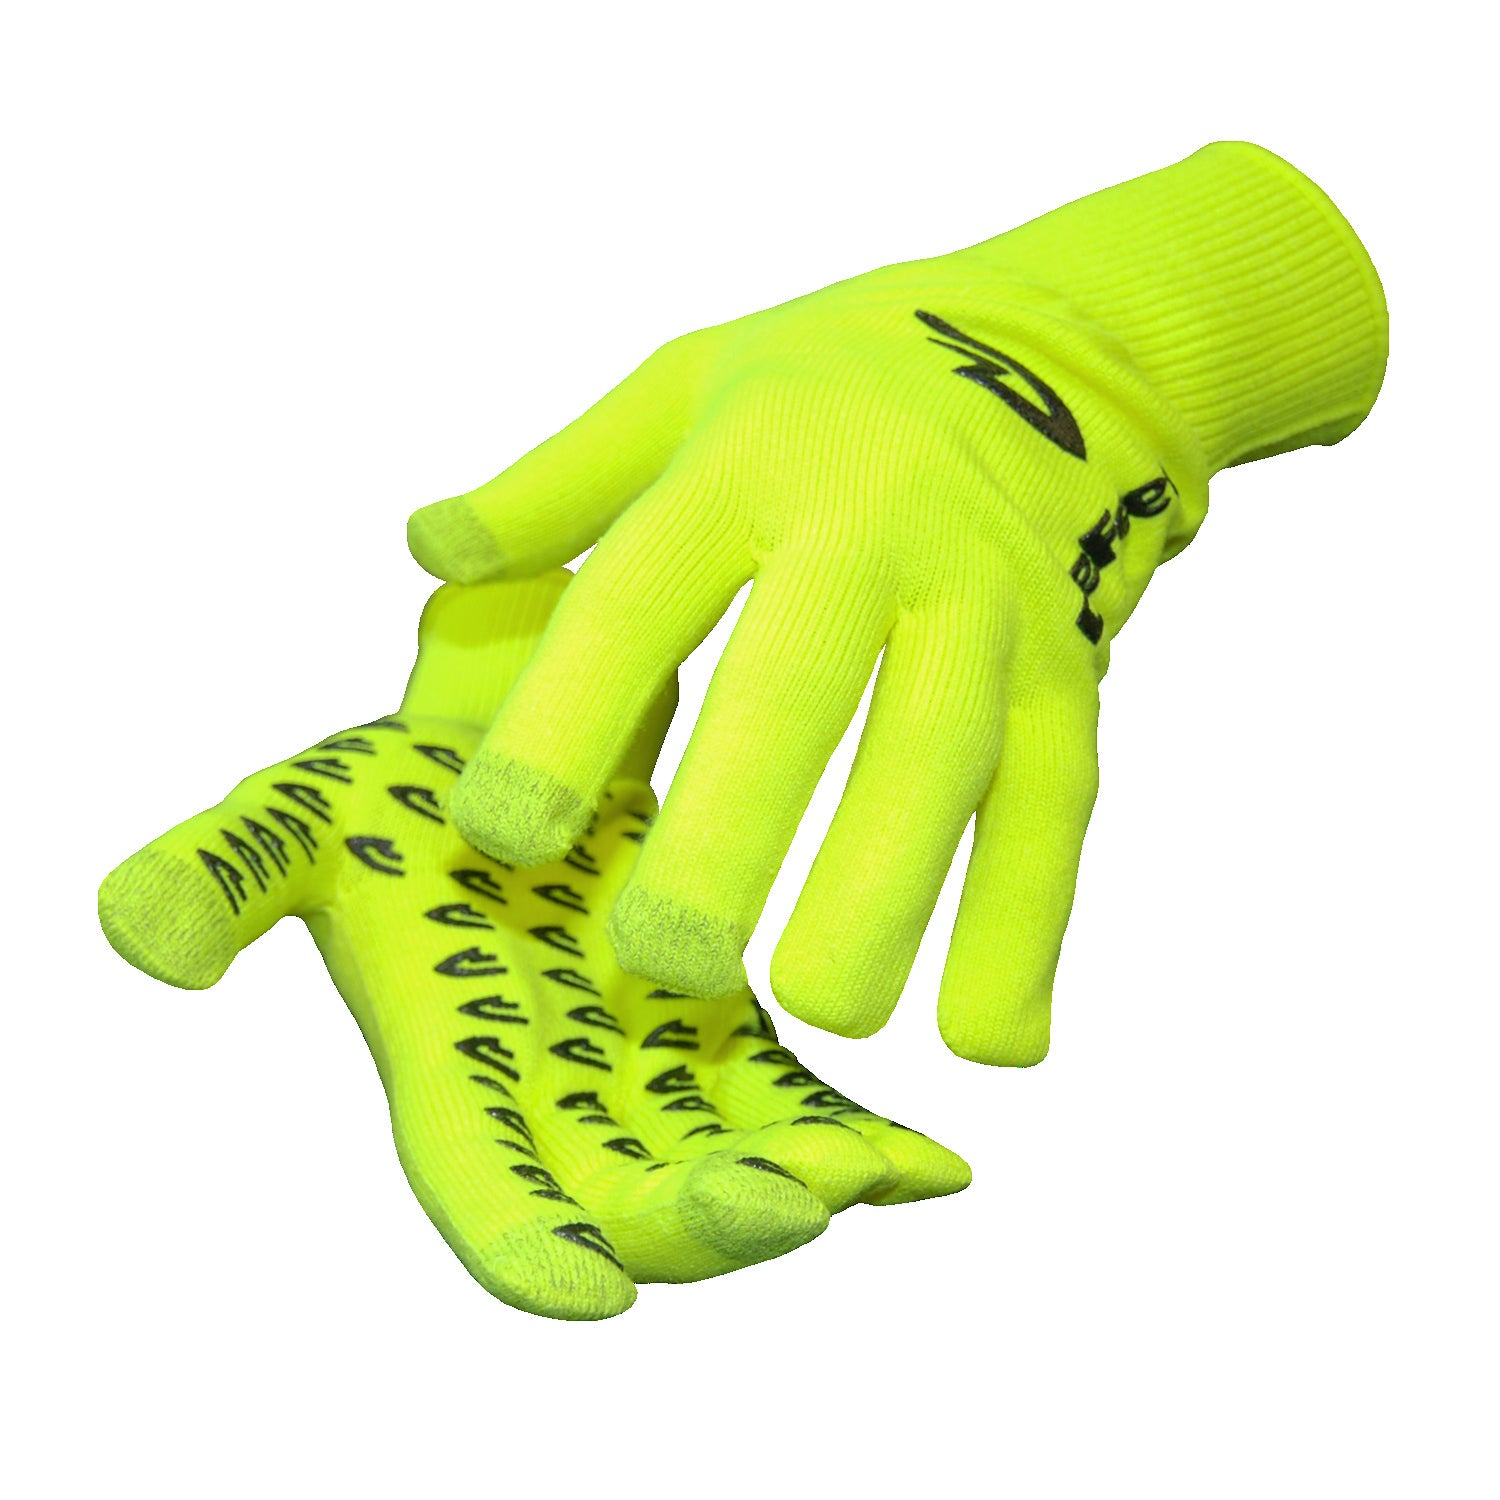 Duraglove ET Neon Yellow w/Black Grippies